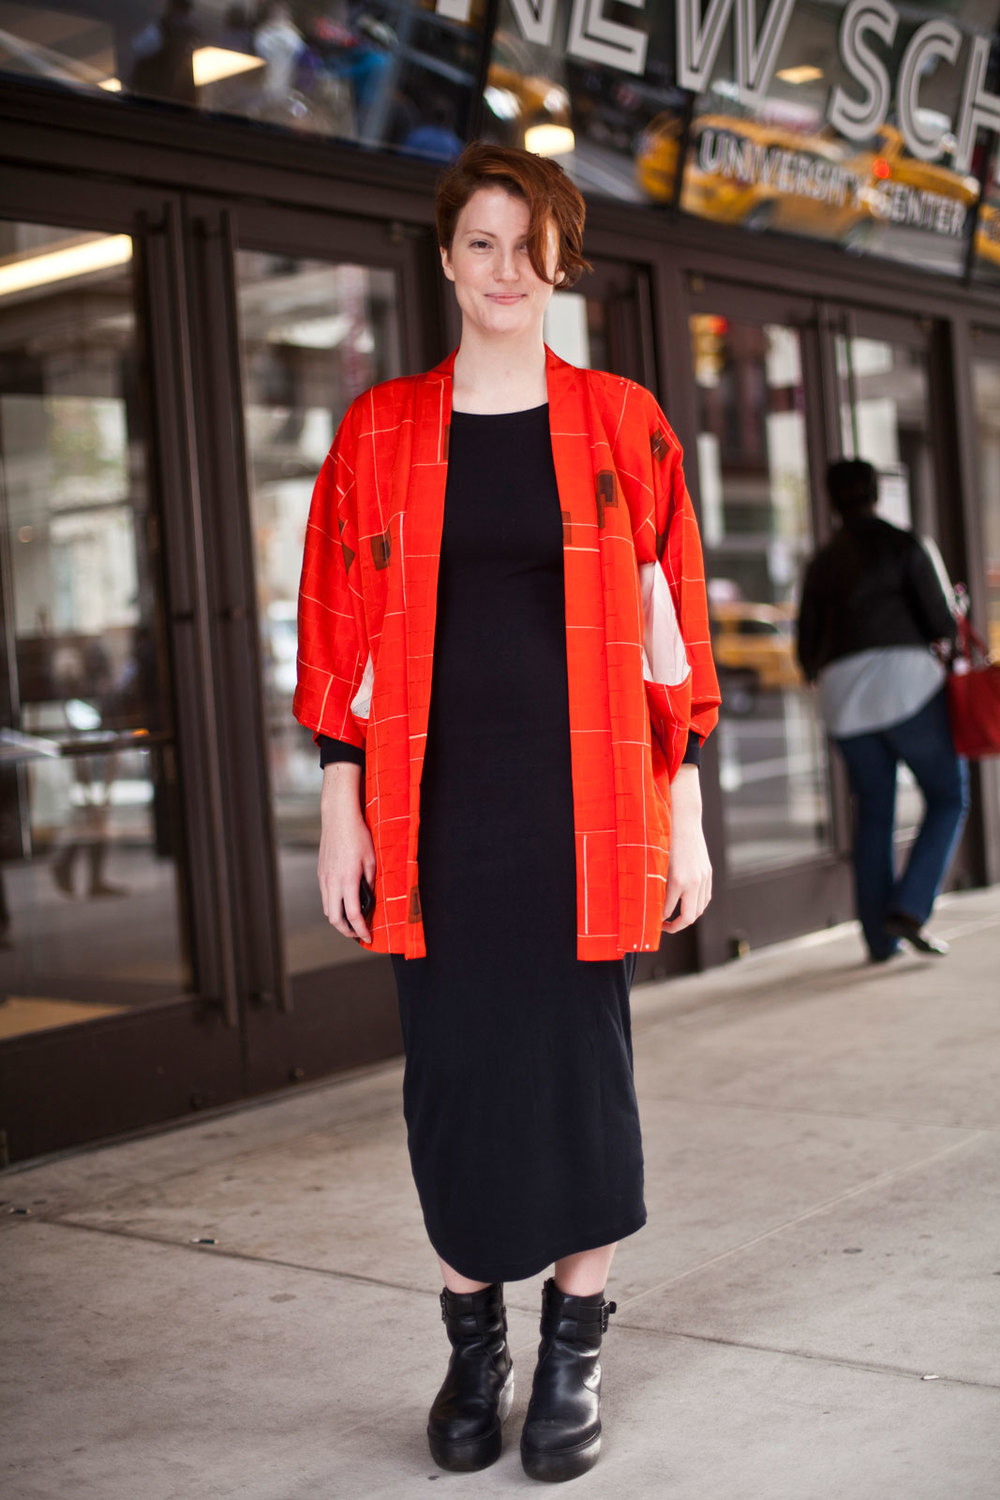 Deirdre Gaine from Parsons  American Apparel dress, kimono purchased on eBay, and Dr. Martens shoes